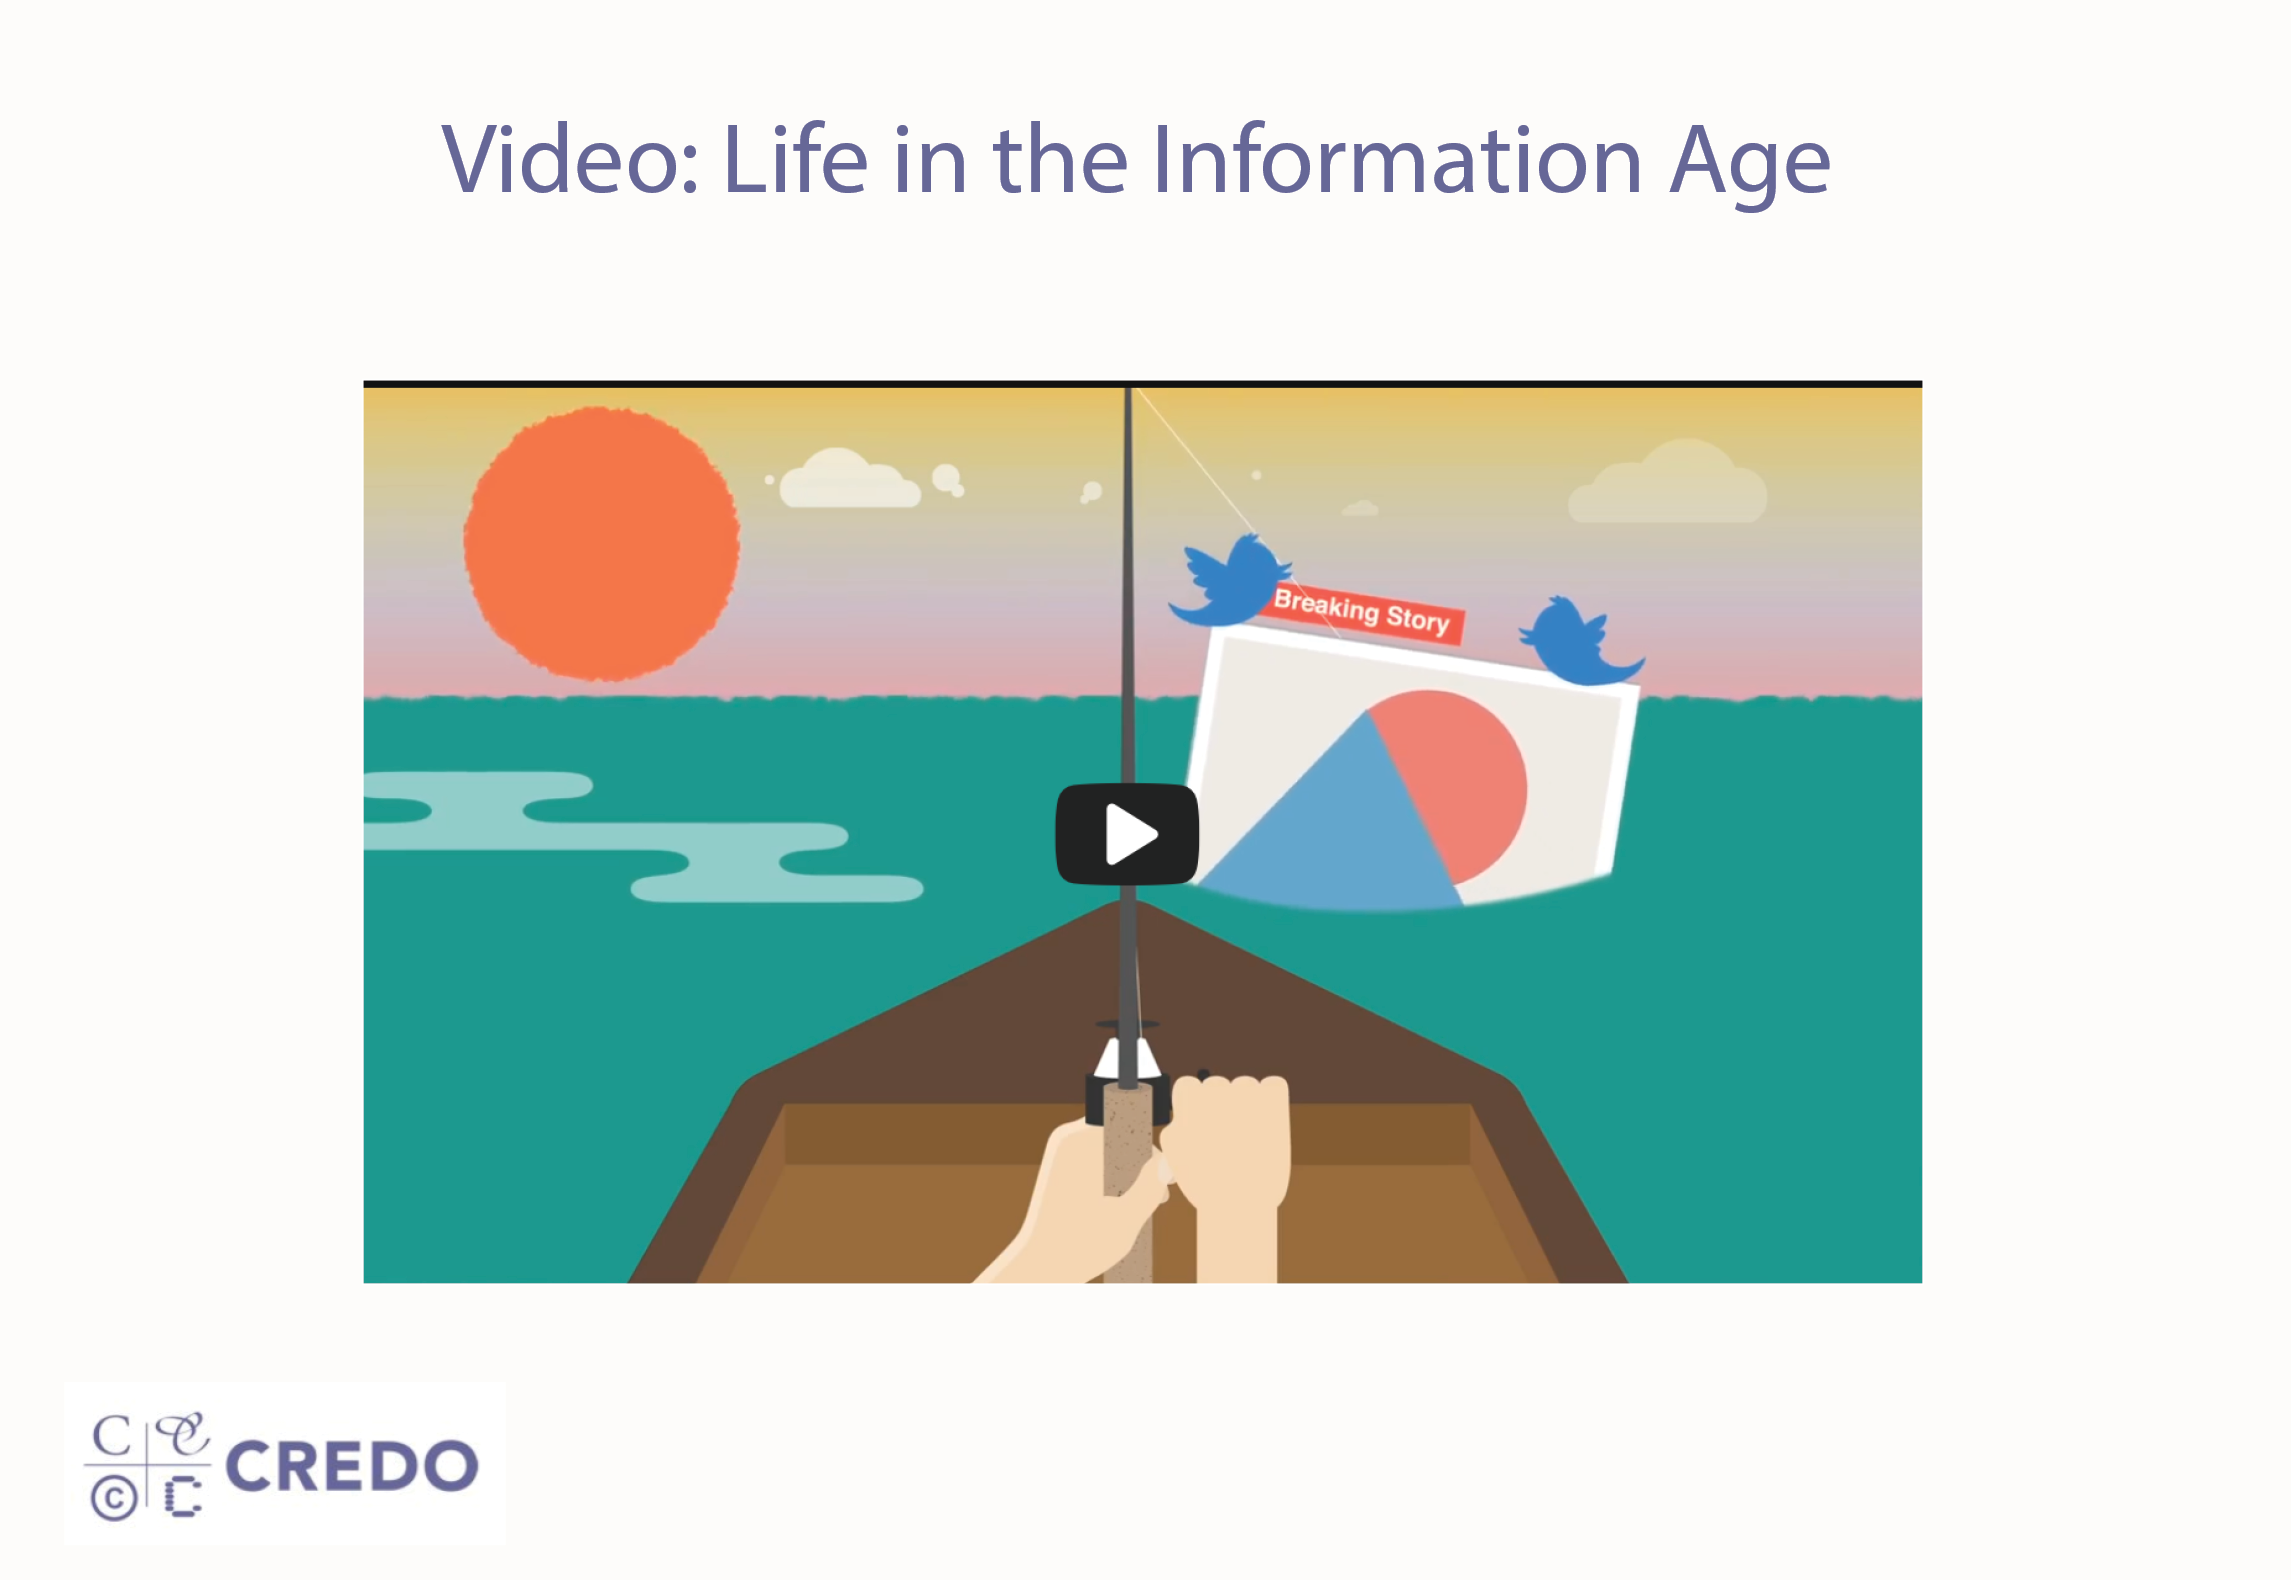 Video: Life in the Information Age